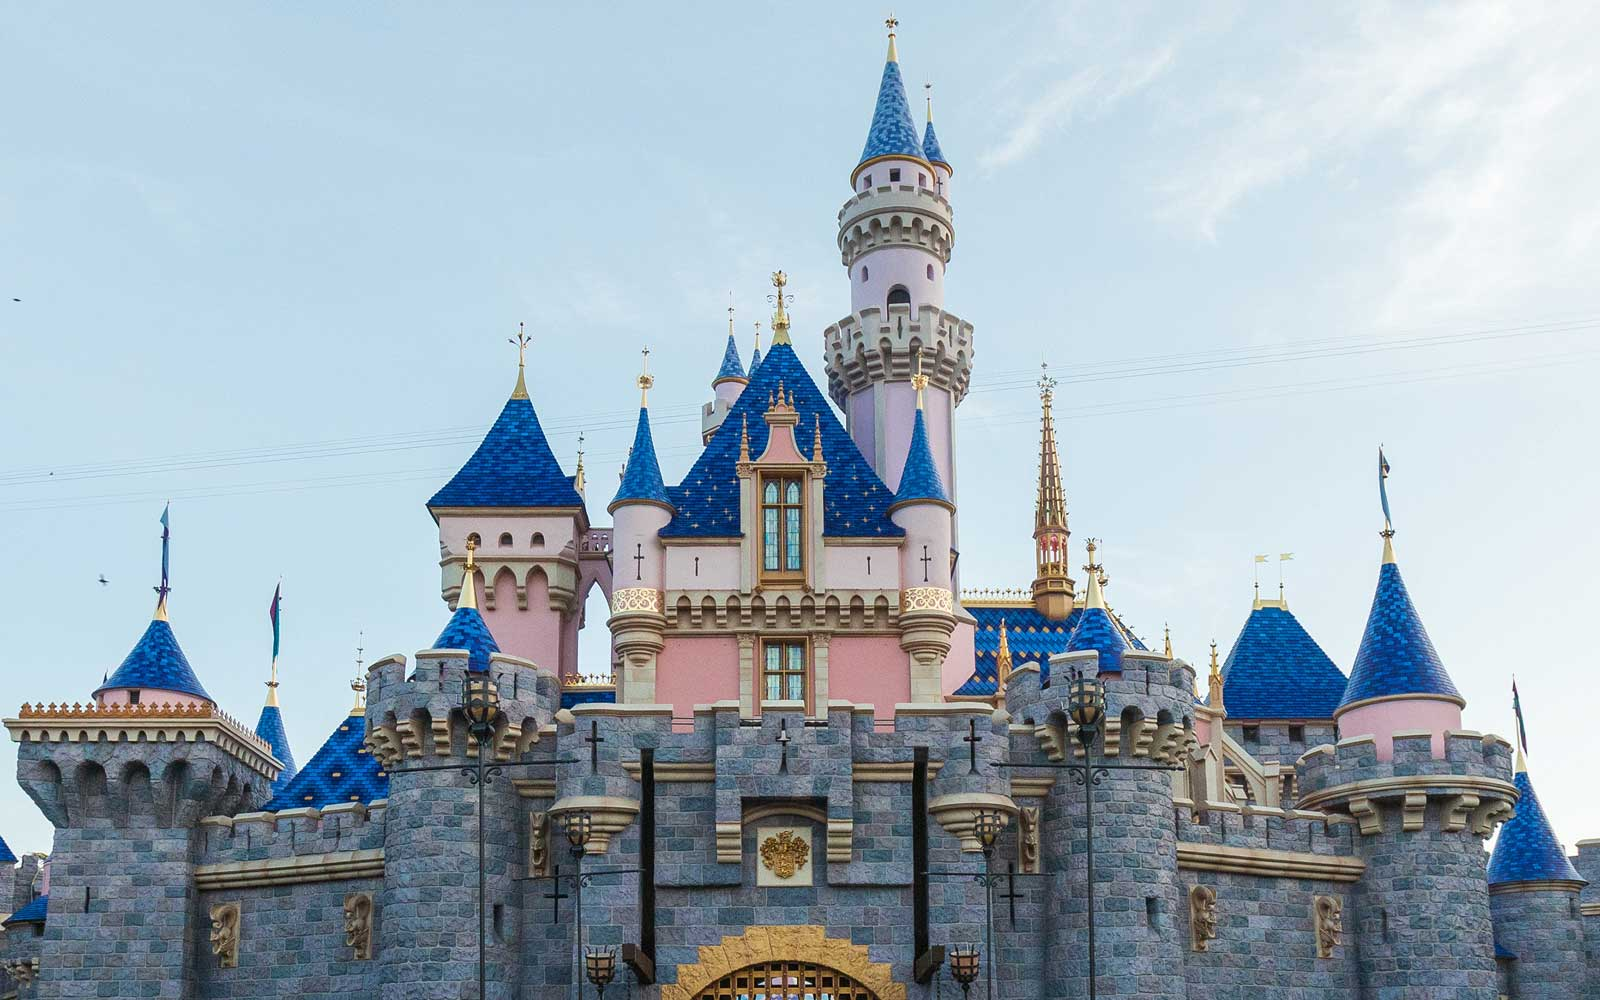 New Sleeping Beauty Castle at Disneyland